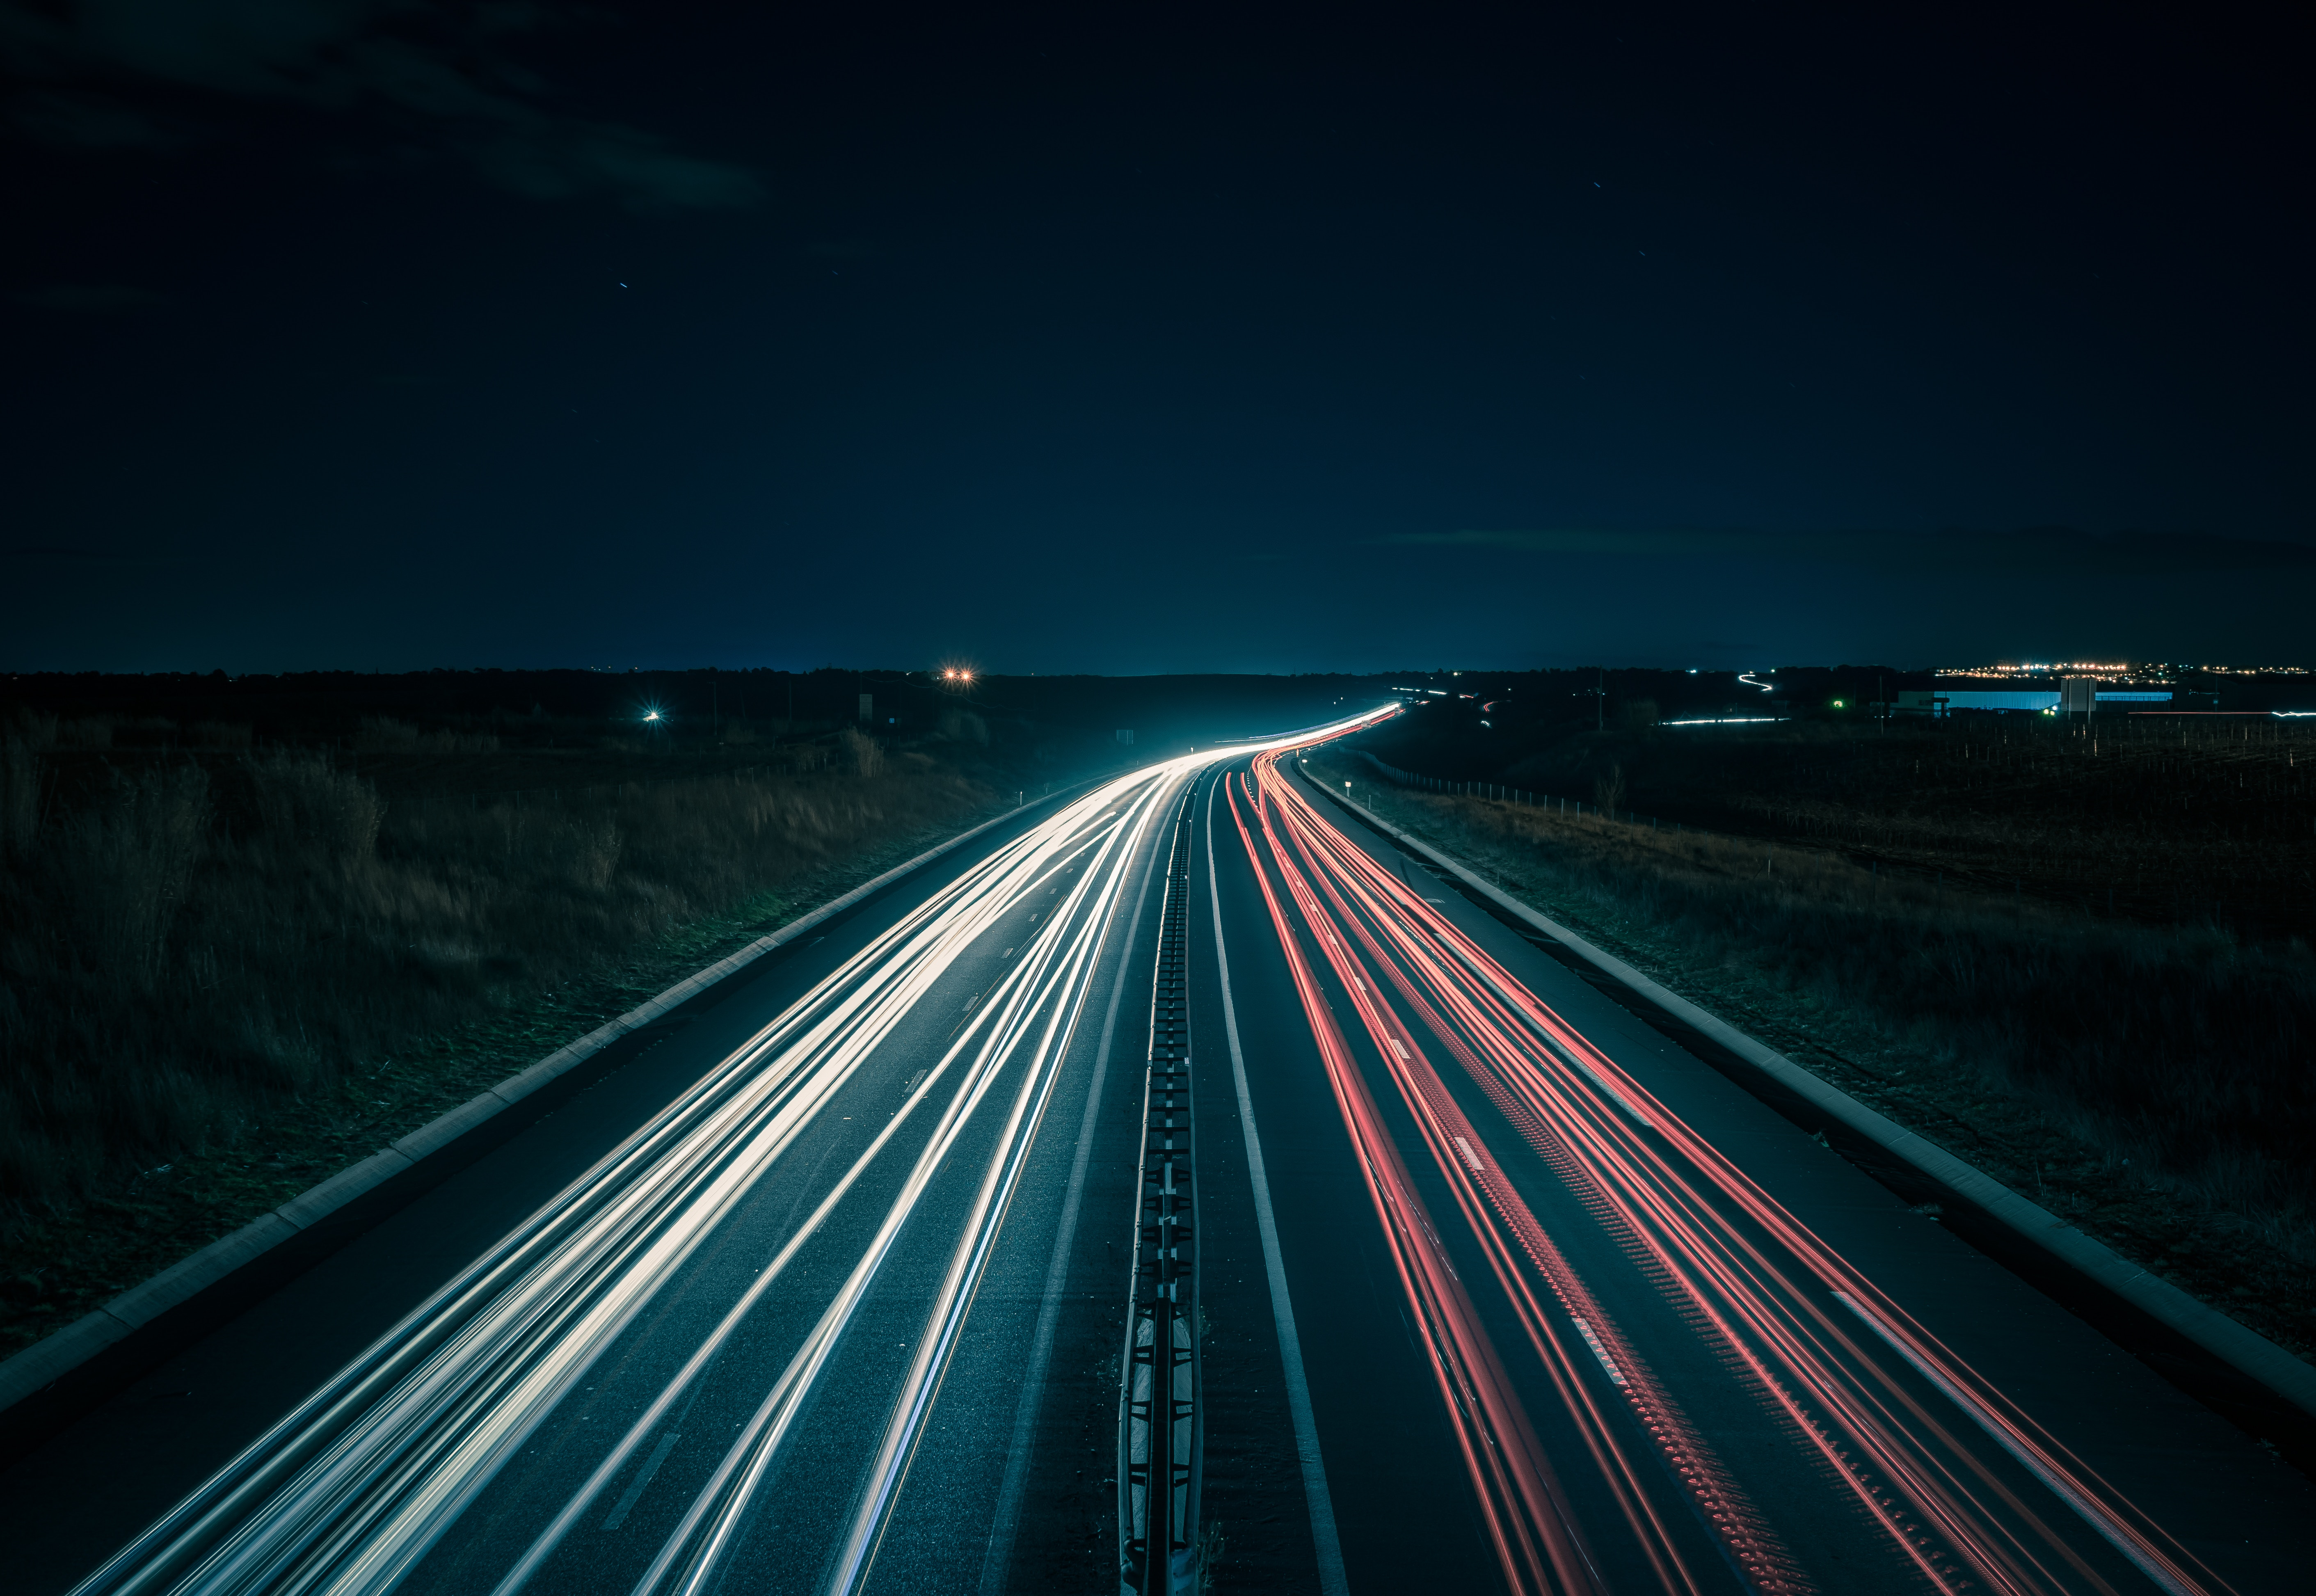 145731 download wallpaper Road, Lighting, Illumination, Night, Cities screensavers and pictures for free